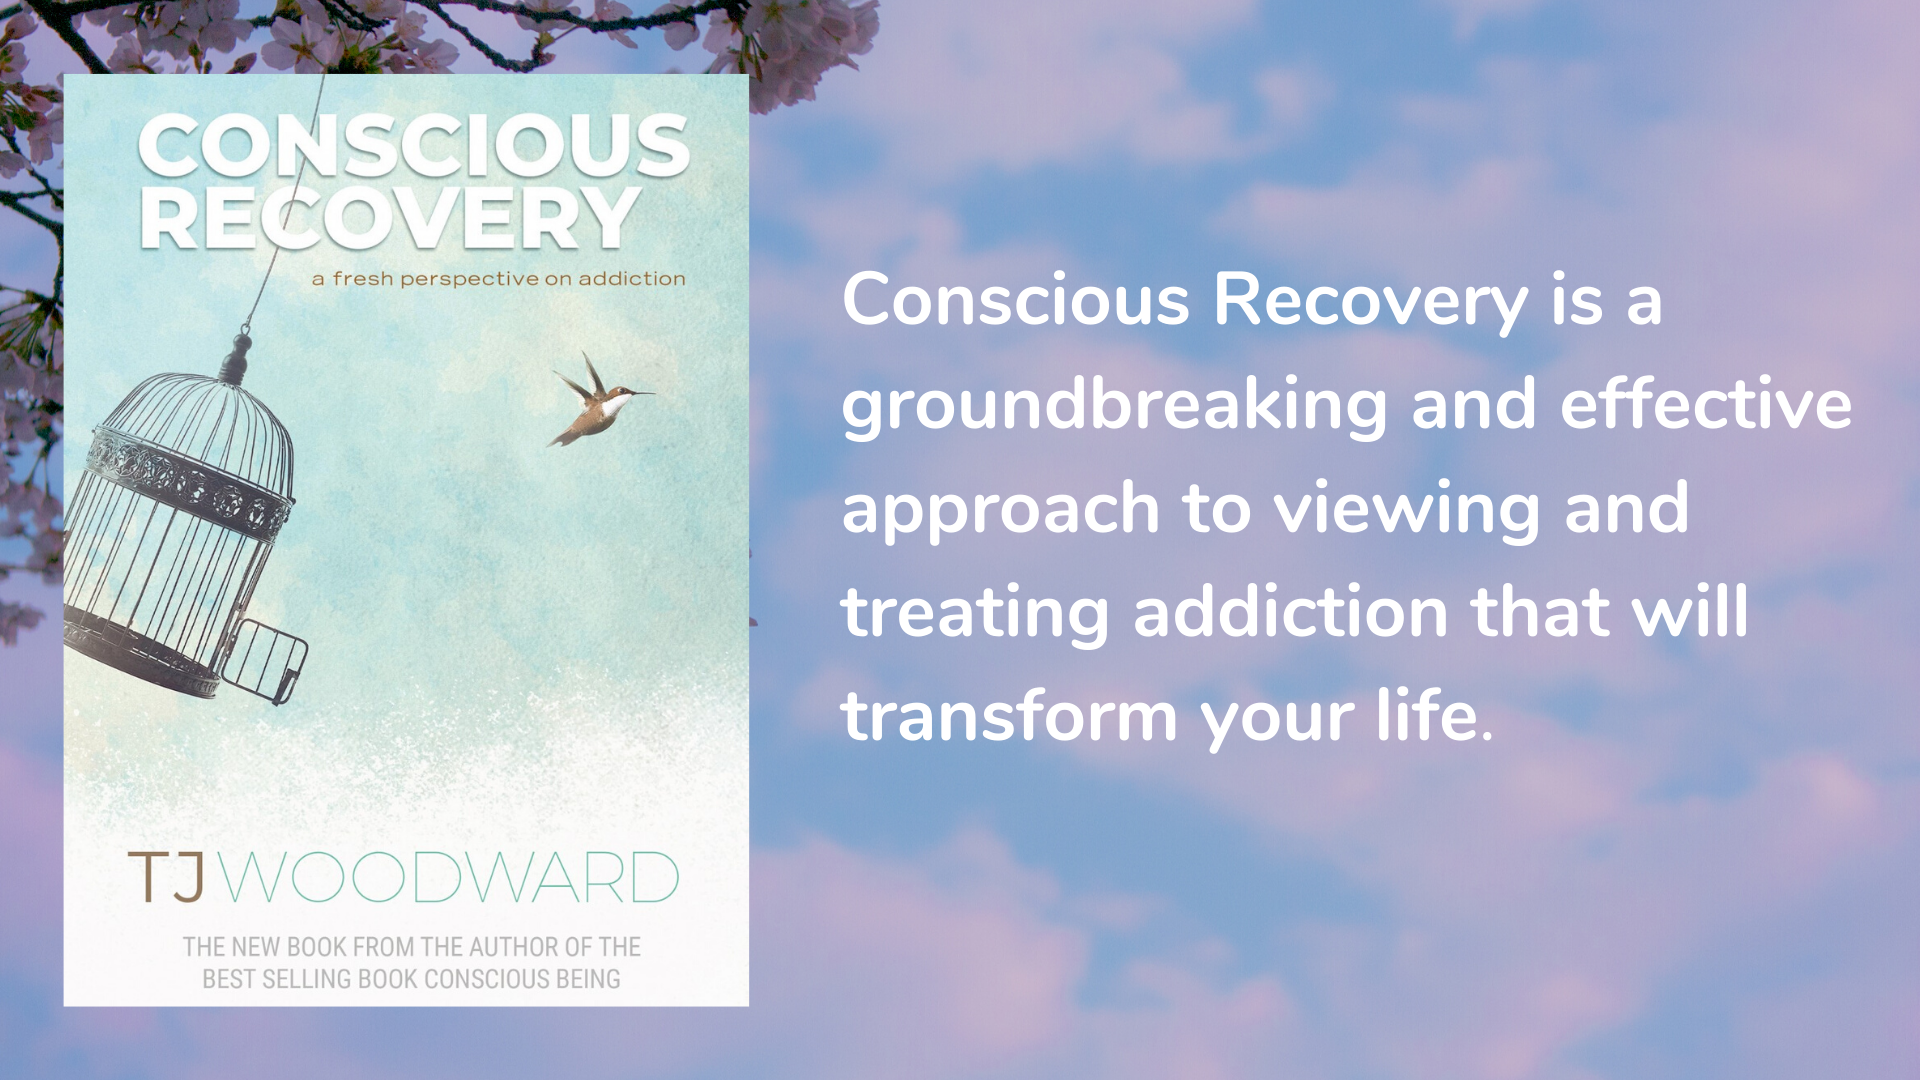 Conscious Recovery: A Fresh Perspective on Addiction by TJ Woodward